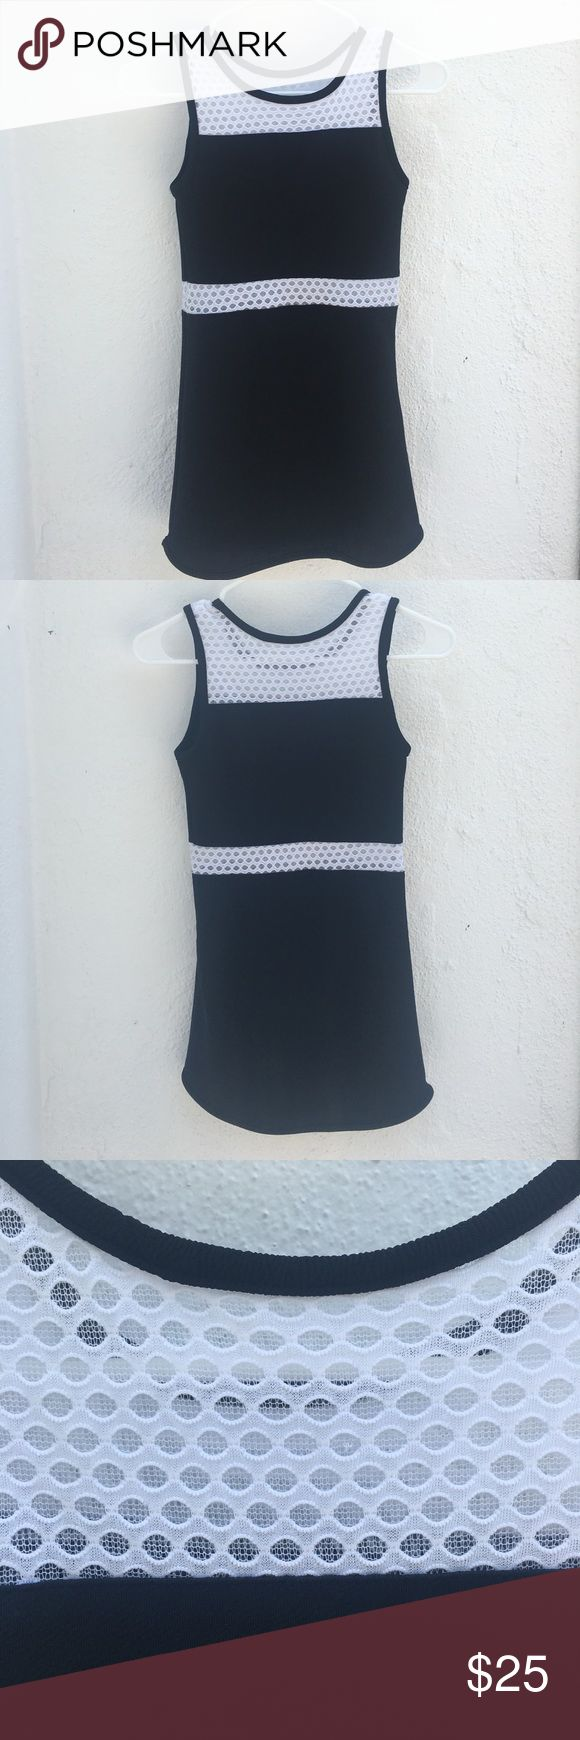 Black and White Dress Black Dress with white mesh accents Sally Miller Couture Dresses